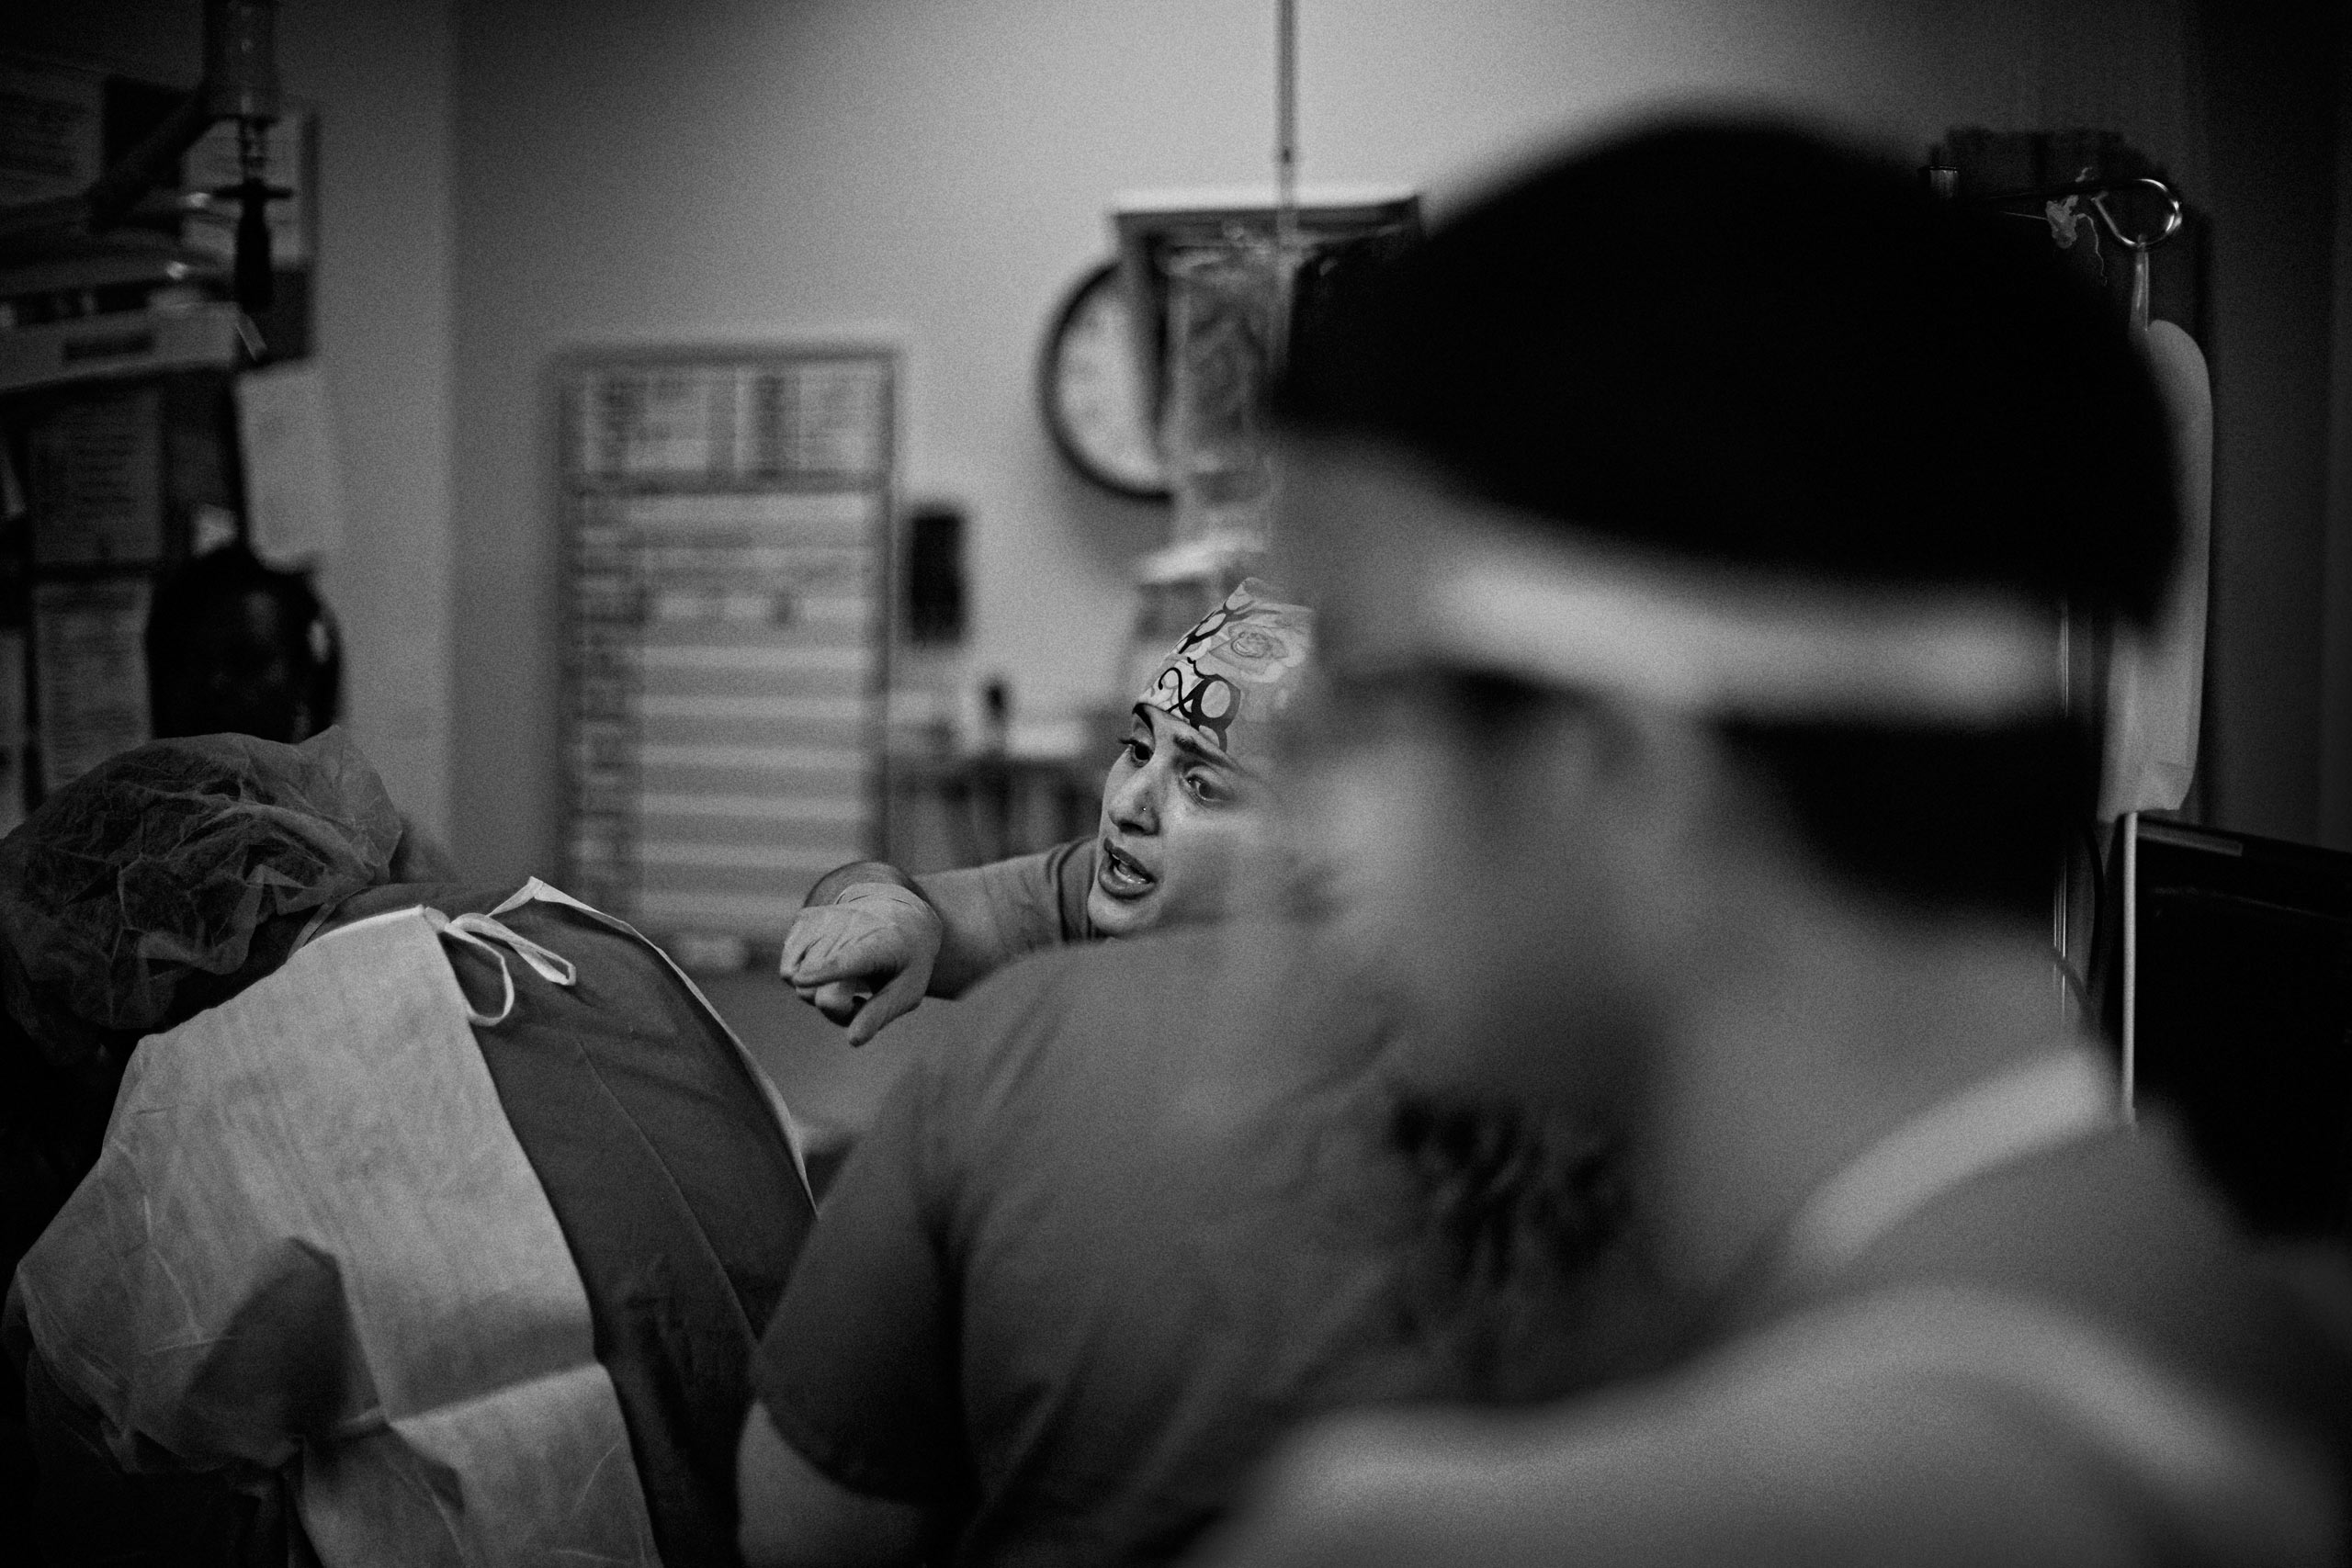 Dr. Salles in the emergency room stabilizing a patient who was brought in after being injured in a car accident. Santa Clara Valley Medical Center in San Jose, California. March 28, 2015.